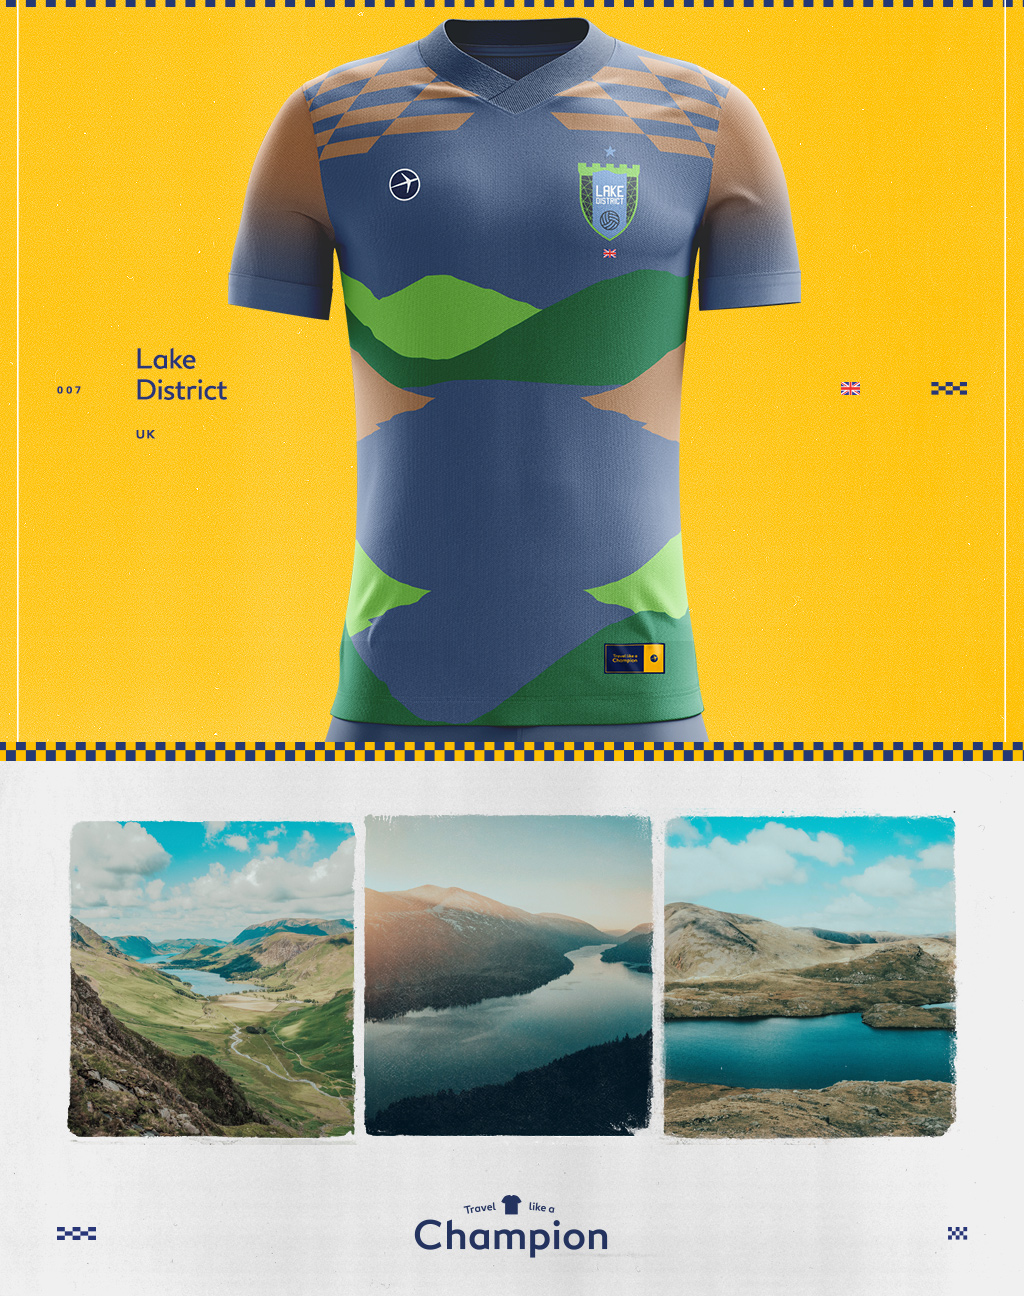 images of the lake district of the UK made into a soccer jersey design